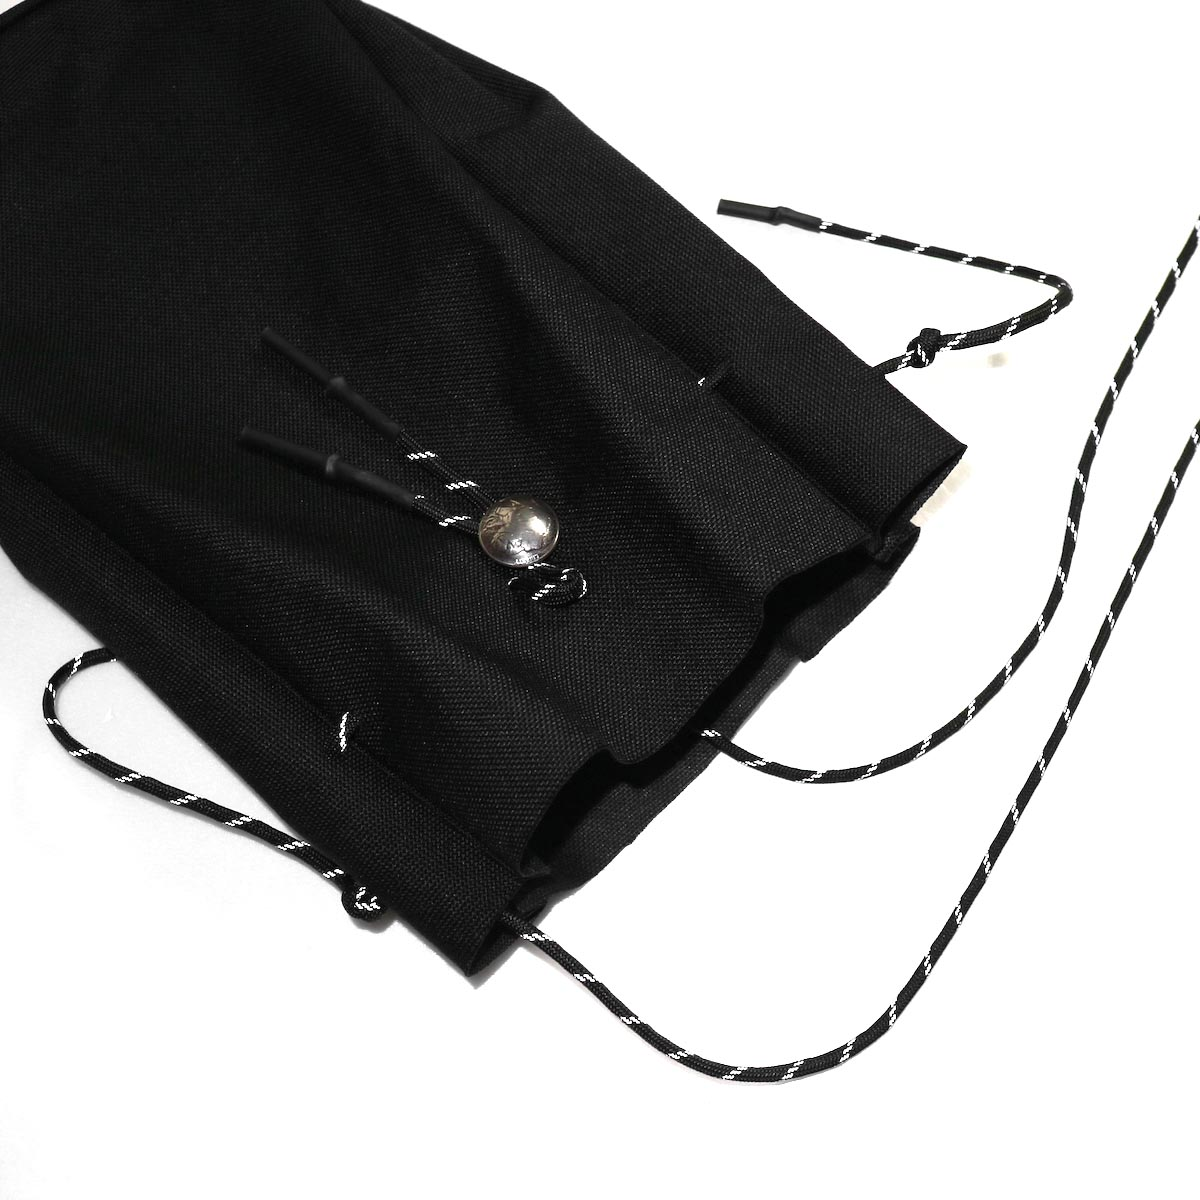 吉岡衣料店 / drawstring bag -L-. w/concho. black開口部